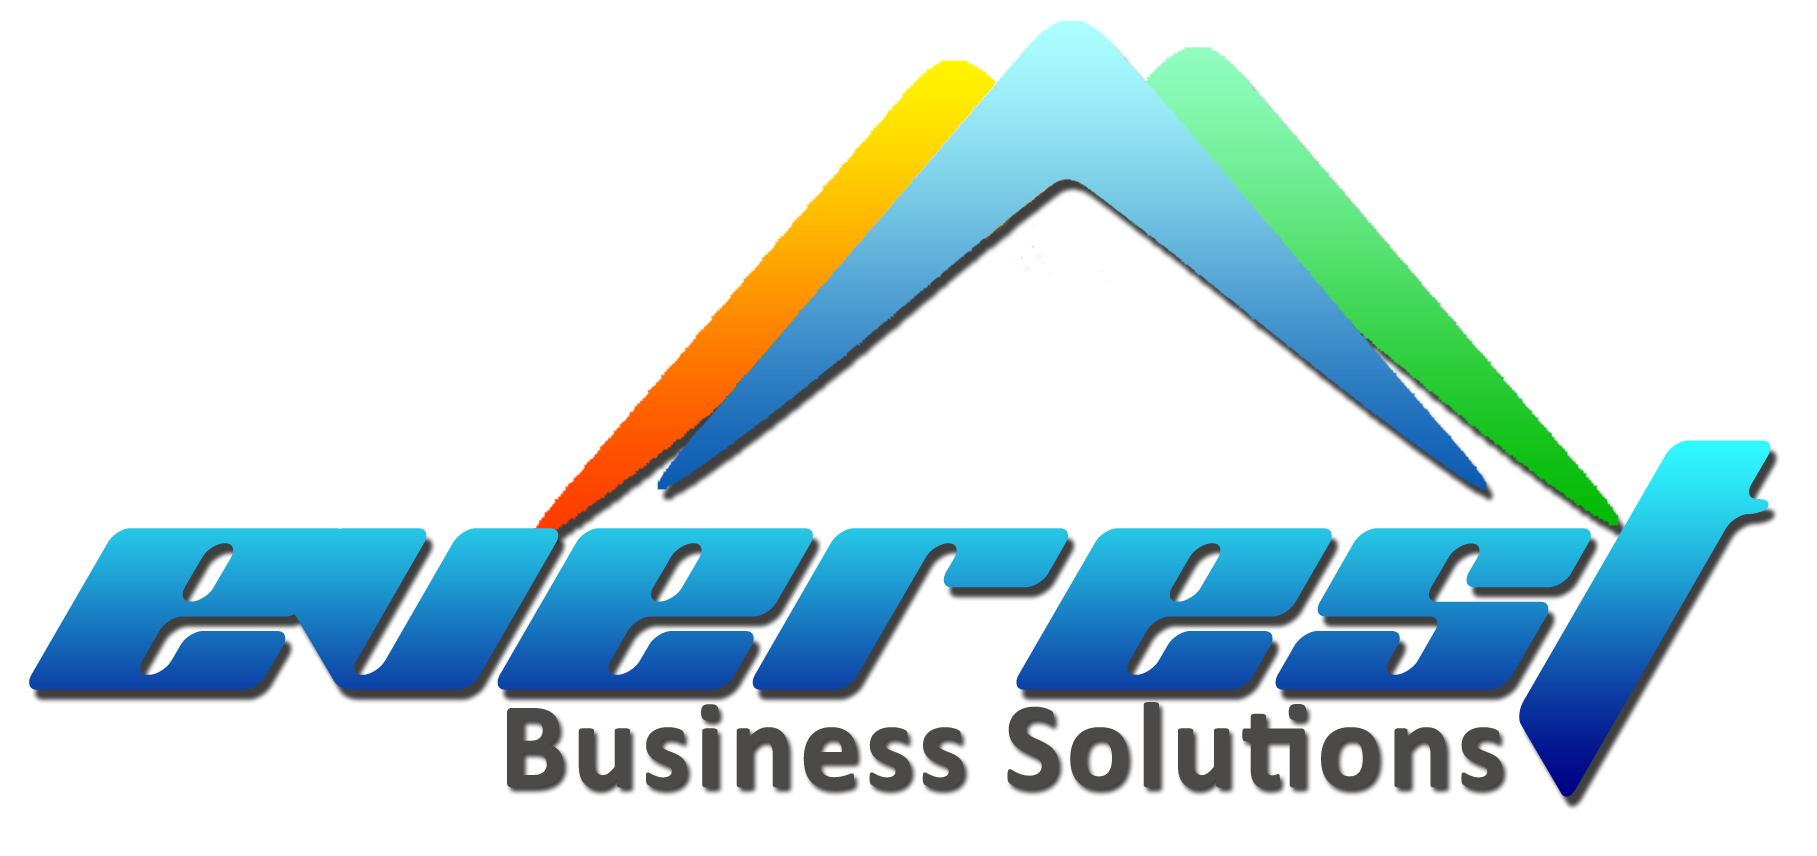 Everest Business Solutions